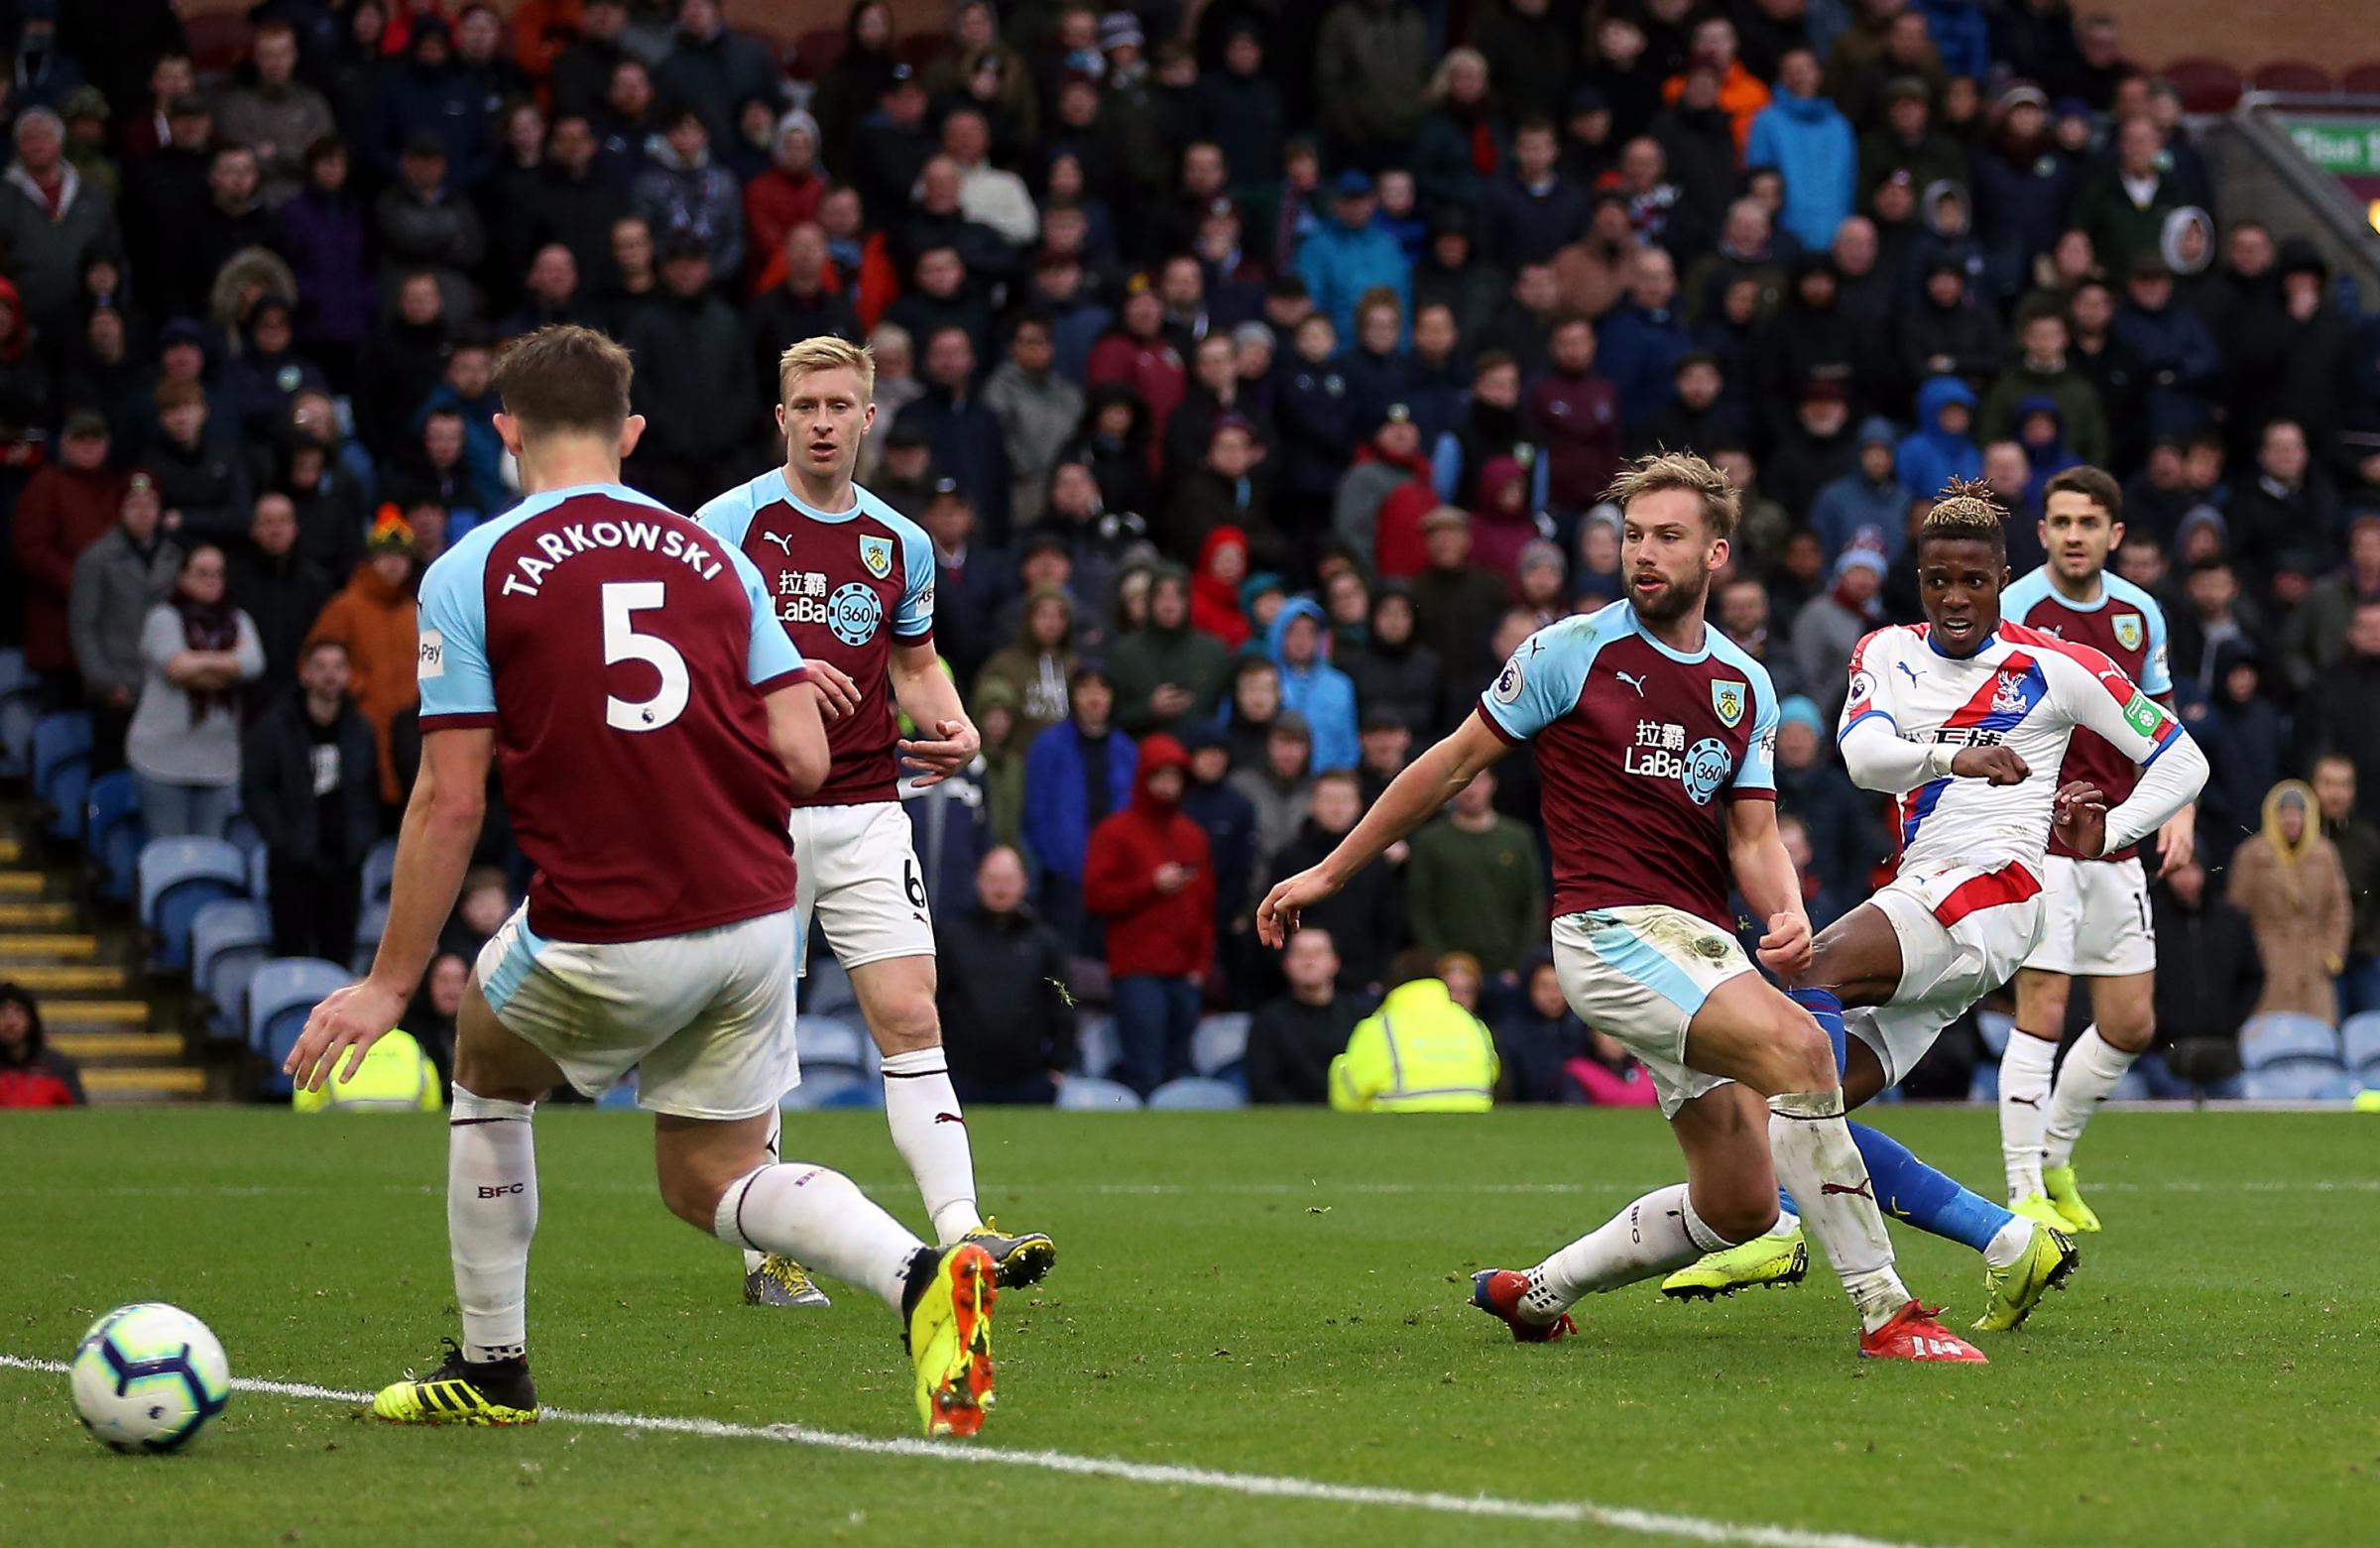 Crystal Palace's Wilfried Zaha scores his side's third goal of the game during the Premier League match at Turf Moor, Burnley. PRESS ASSOCIATION Photo. Picture date: Saturday March 2, 2019. See PA story SOCCER Burnley. Photo credit should read: N